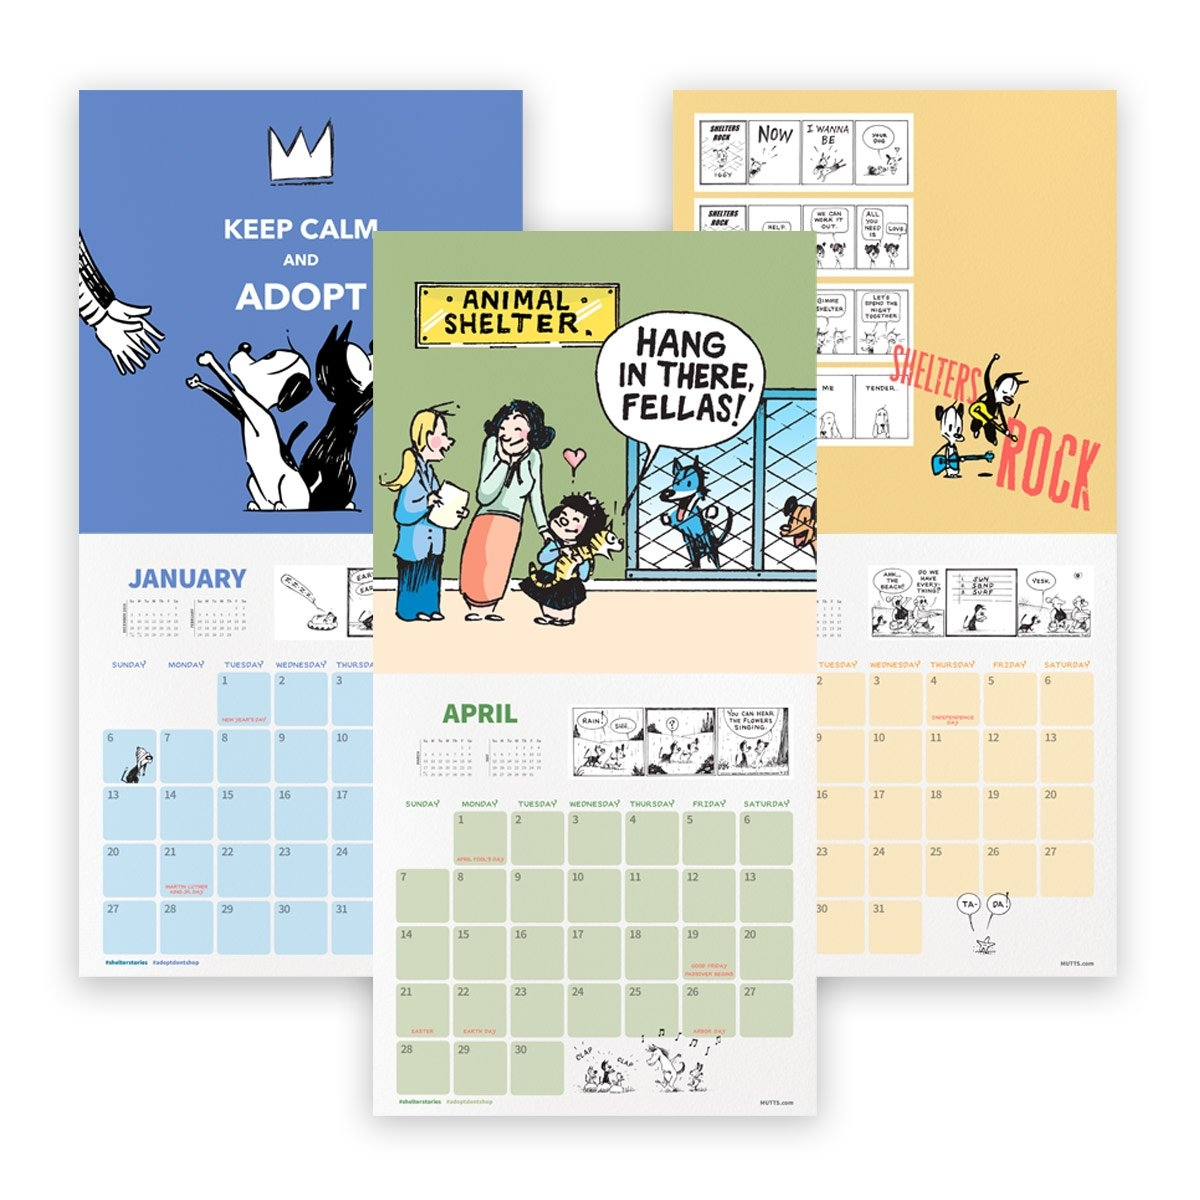 Mutts 2019 Wall Calendar | Mutts Calendar 2019 On Sale